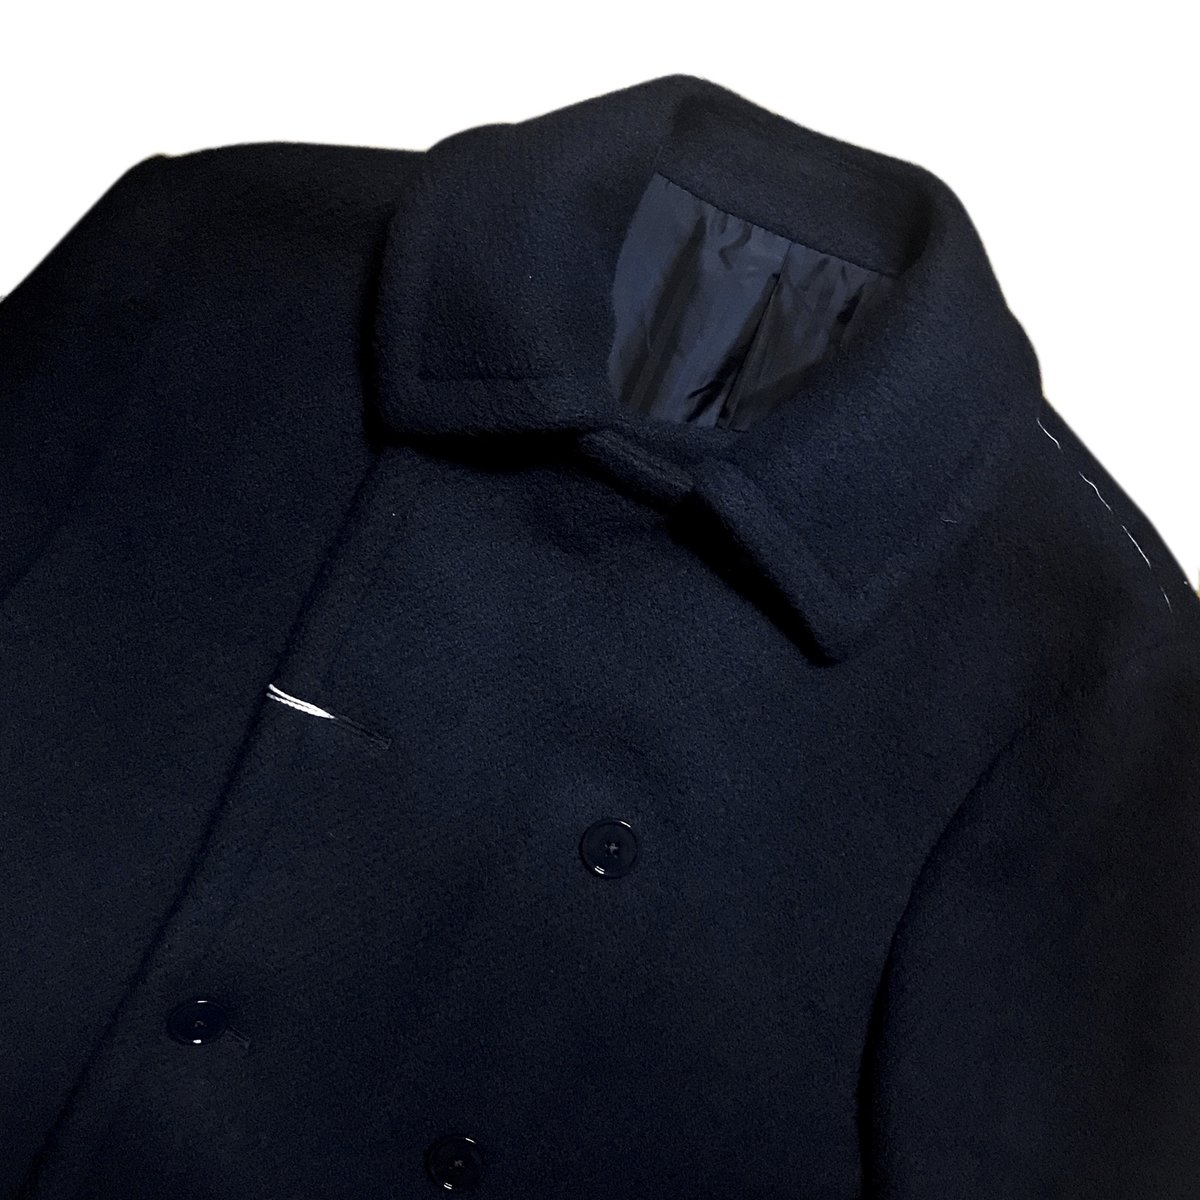 mp massimo piombo double breasted brushed wool coat detail 3.jpg